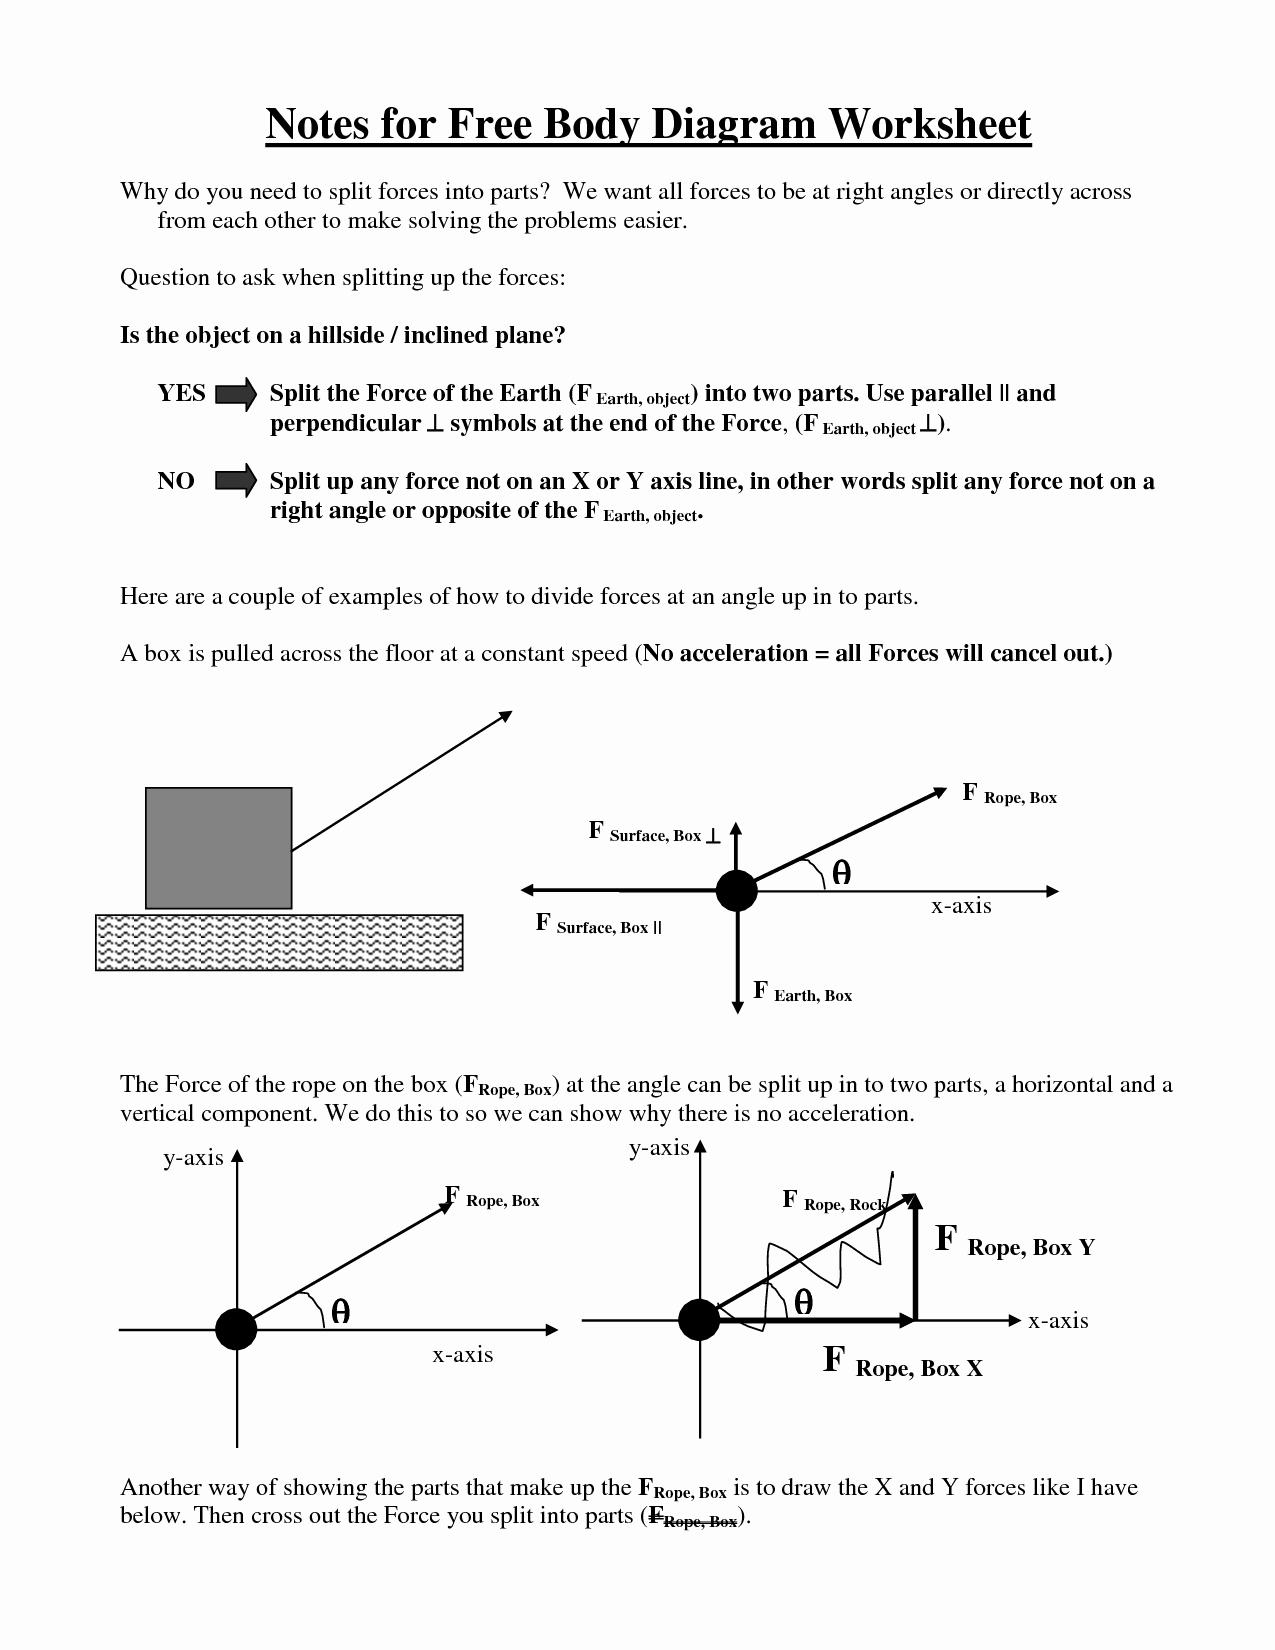 Free Body Diagram Worksheet Answers Awesome 13 Best Of force Diagrams Worksheets with Answers